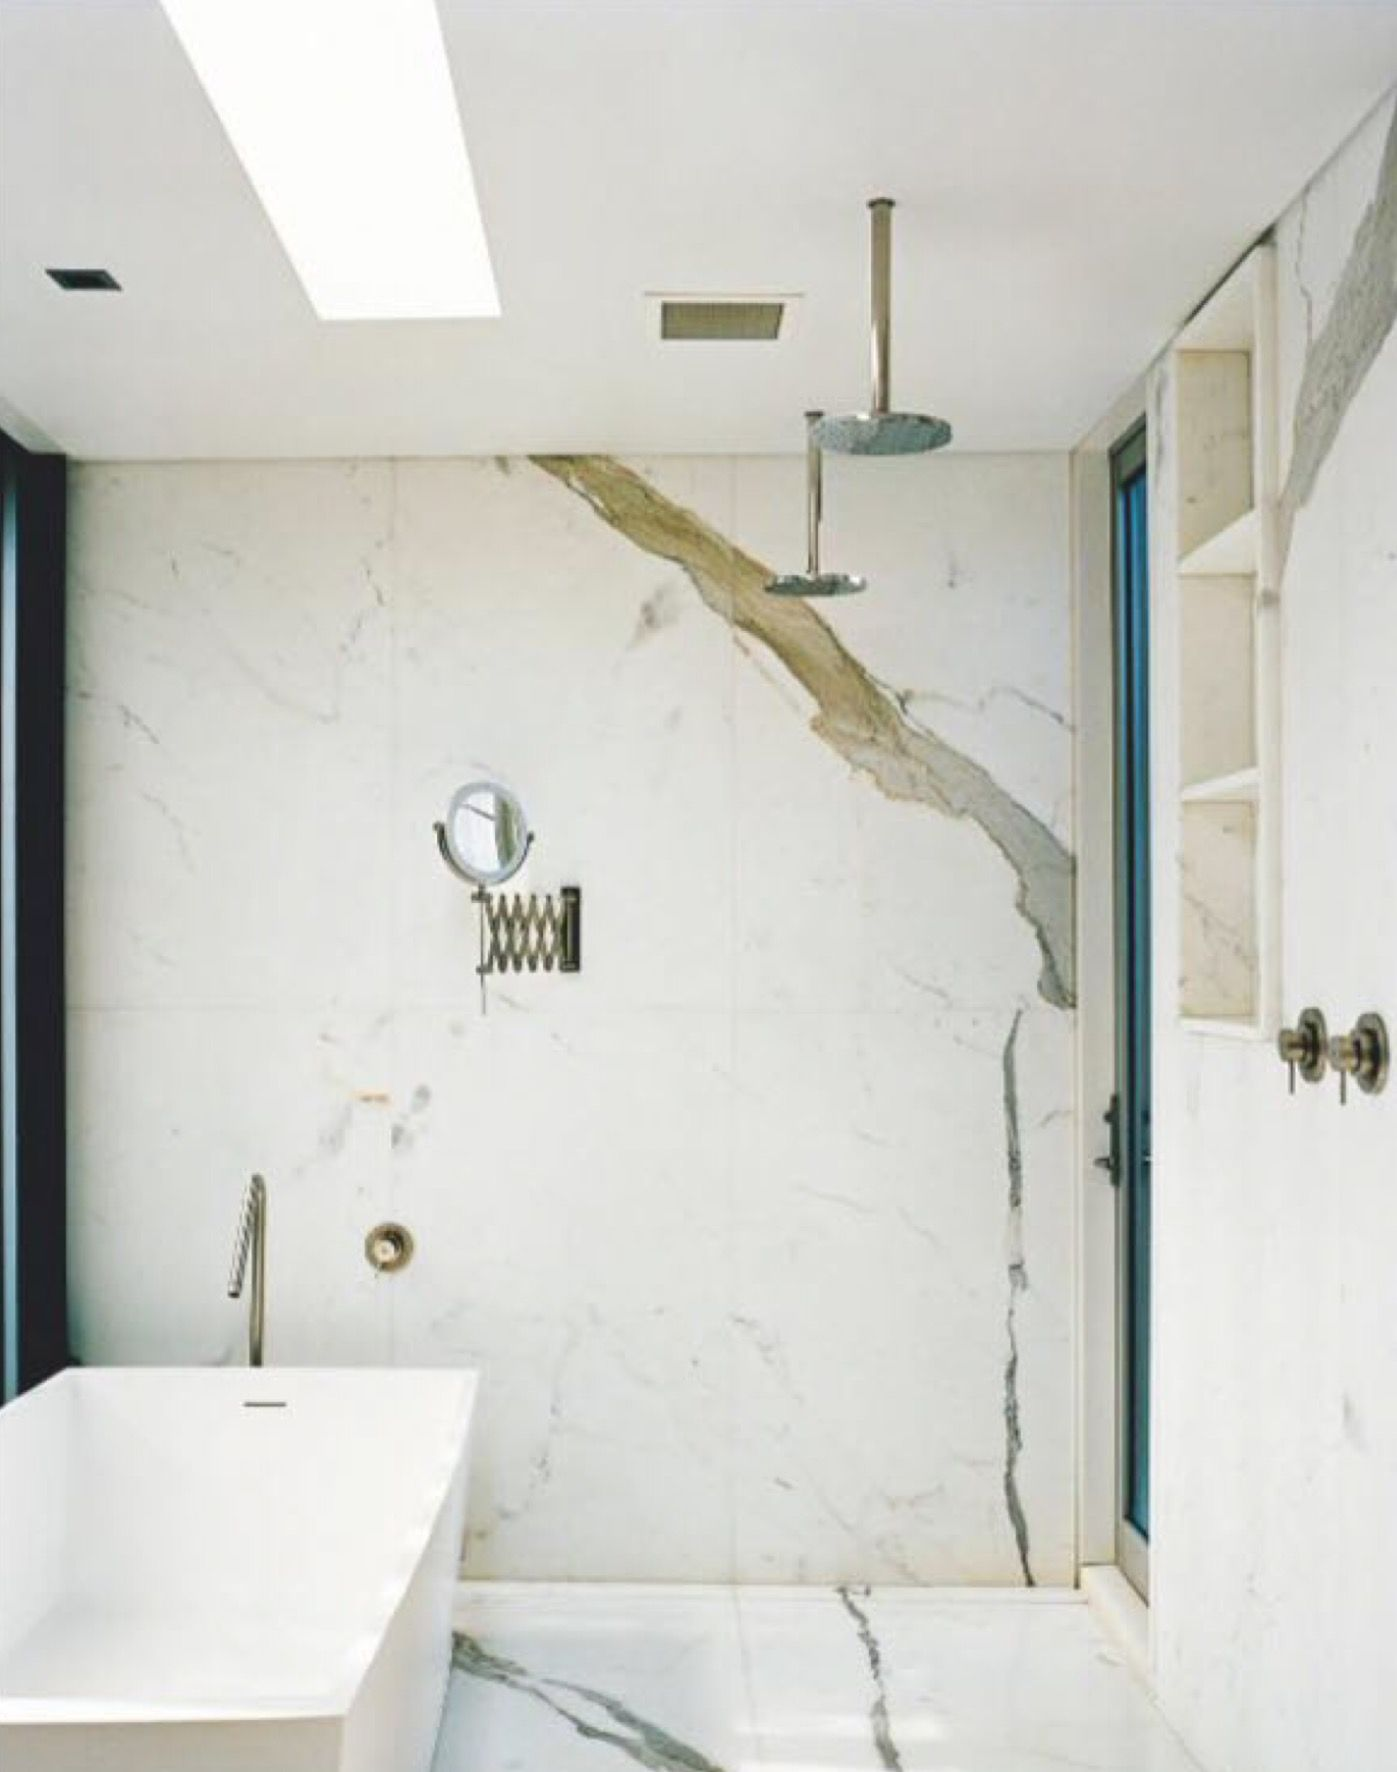 Pin by Gardner/Fox on Wet Rooms | Wet rooms, Free standing ... on Wet Room With Freestanding Tub  id=13675